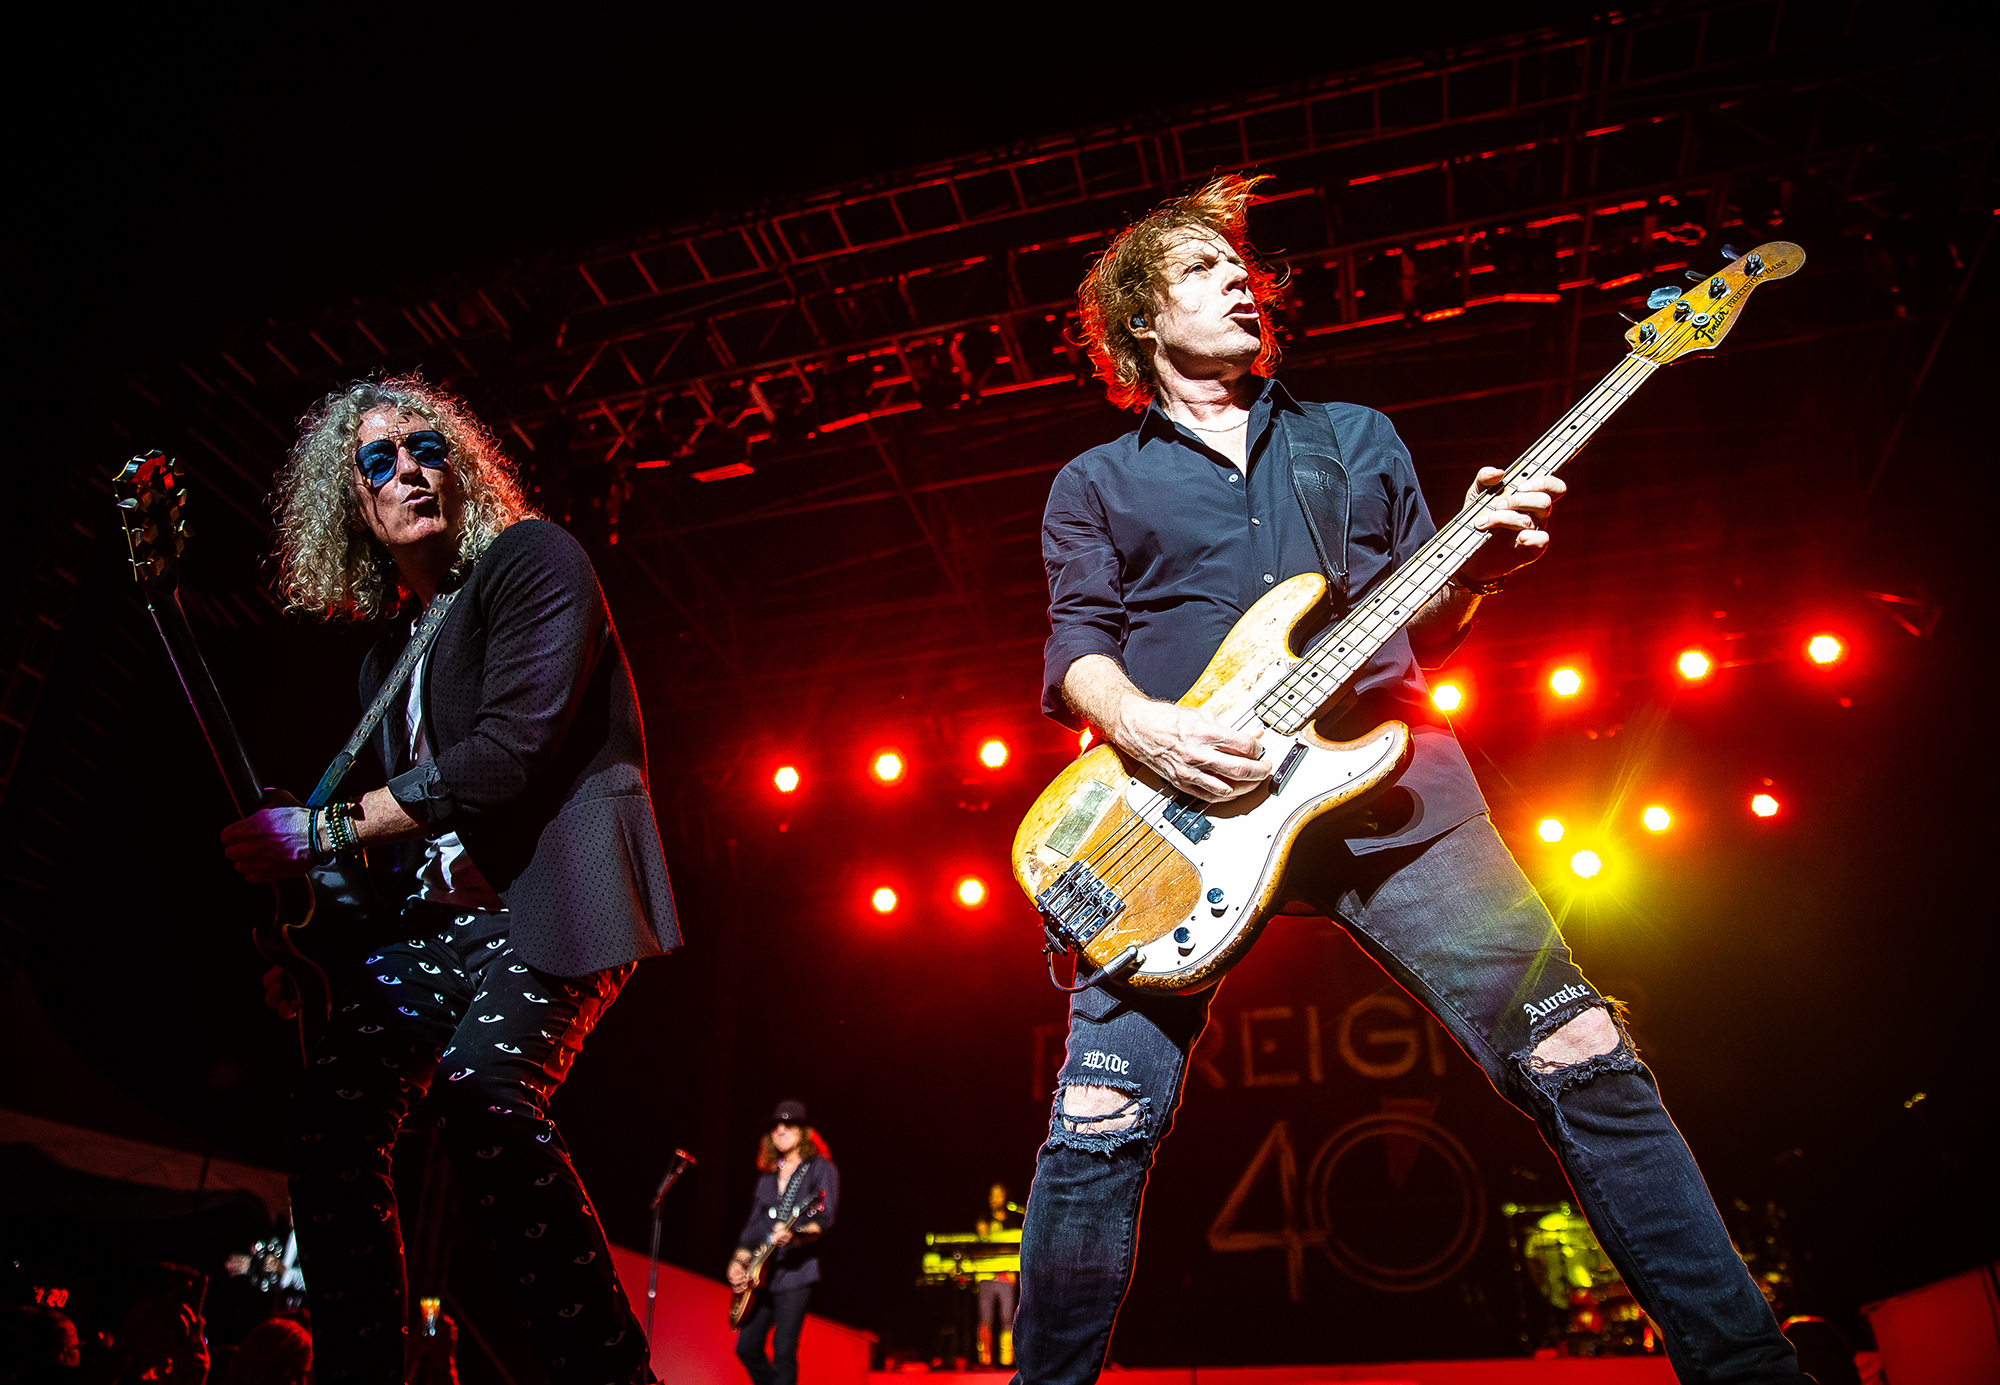 Guitarist Bruce Watson, left, and bassist Jeff Pilson, right, perform with Foreigner as the band performs on the Grandstand Stage during the Illinois State Fair at the Illinois State Fairgrounds, Sunday, Aug. 12, 2018, in Springfield, Ill. [Justin L. Fowler/The State Journal-Register]